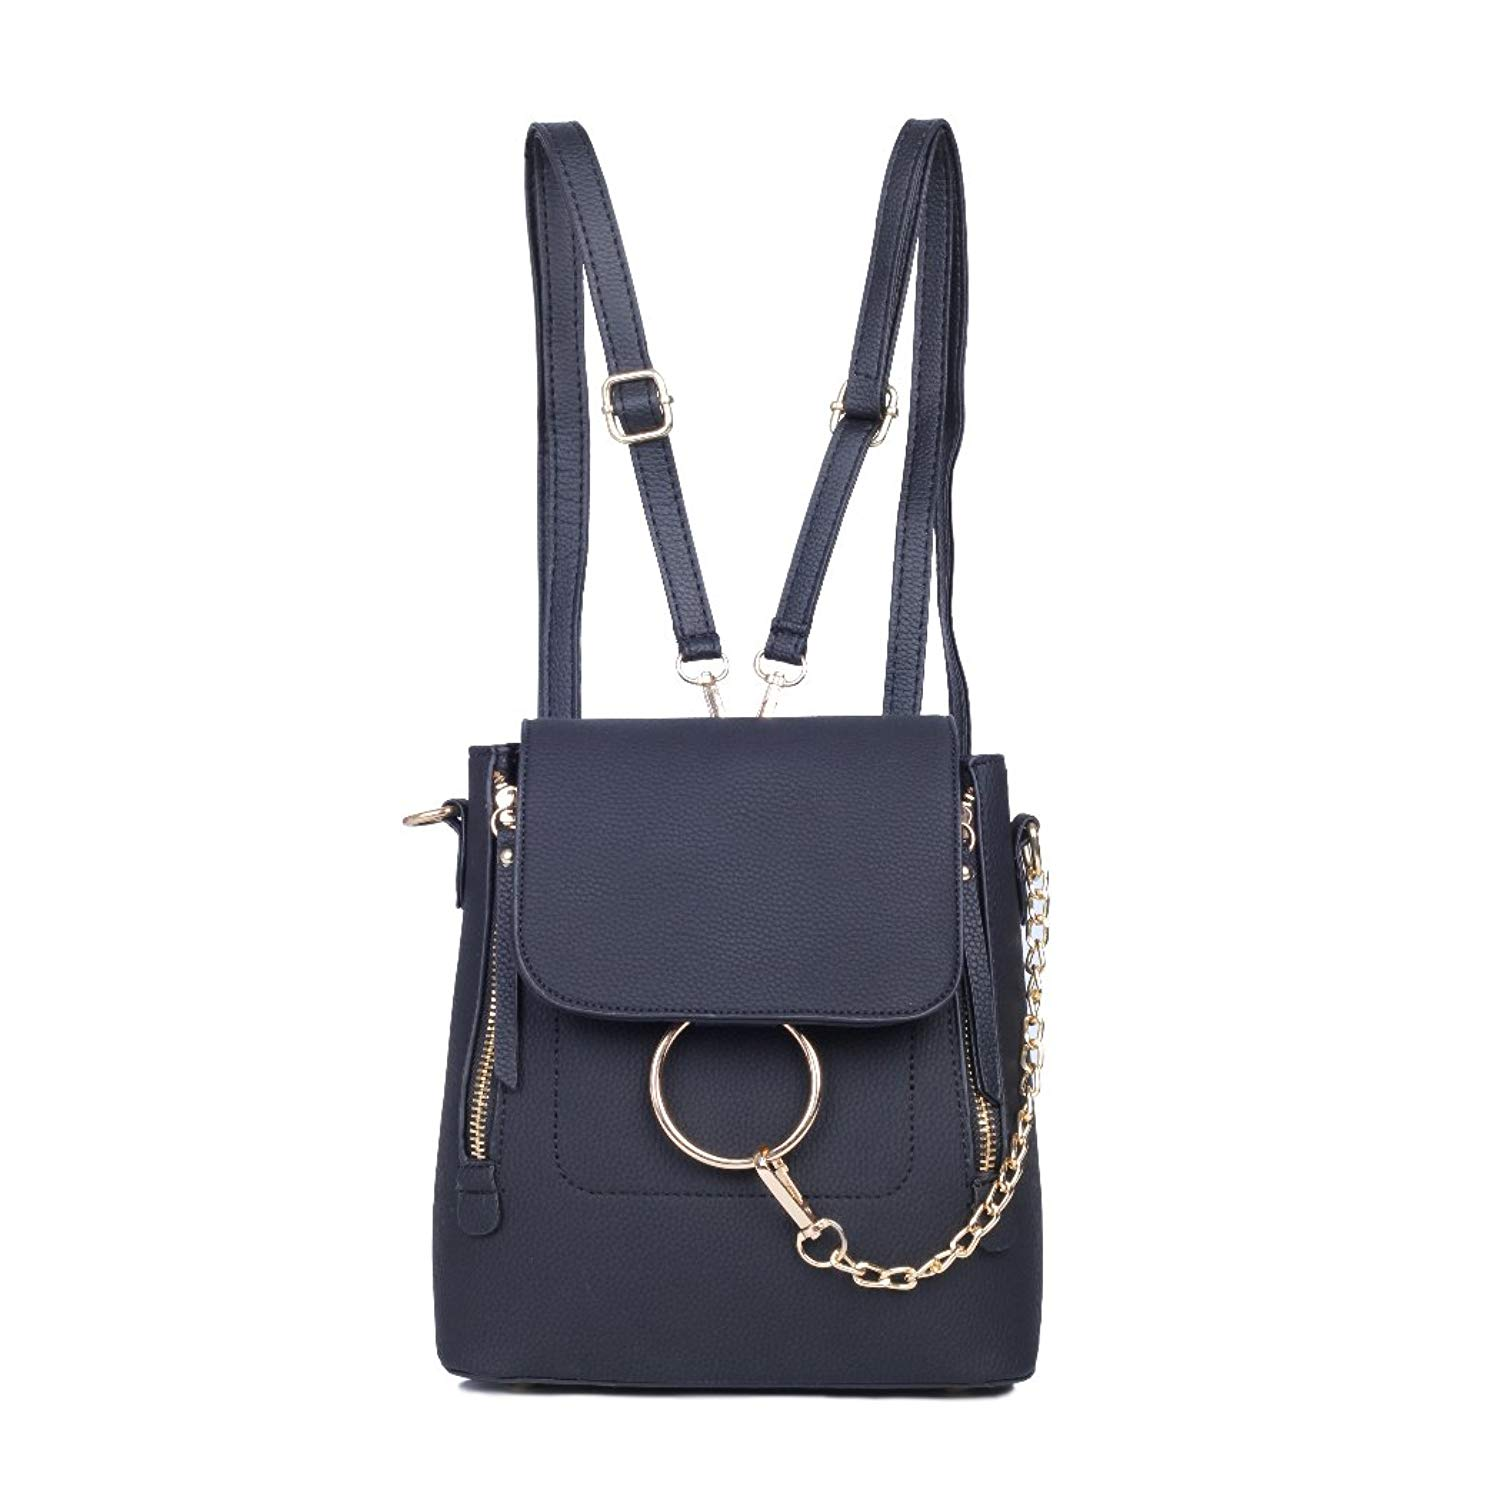 f78e063684 Get Quotations · Backpack Purse for Women Leather Women s Purse Backpack  Chain Cross Body Bag Shoulder Bags